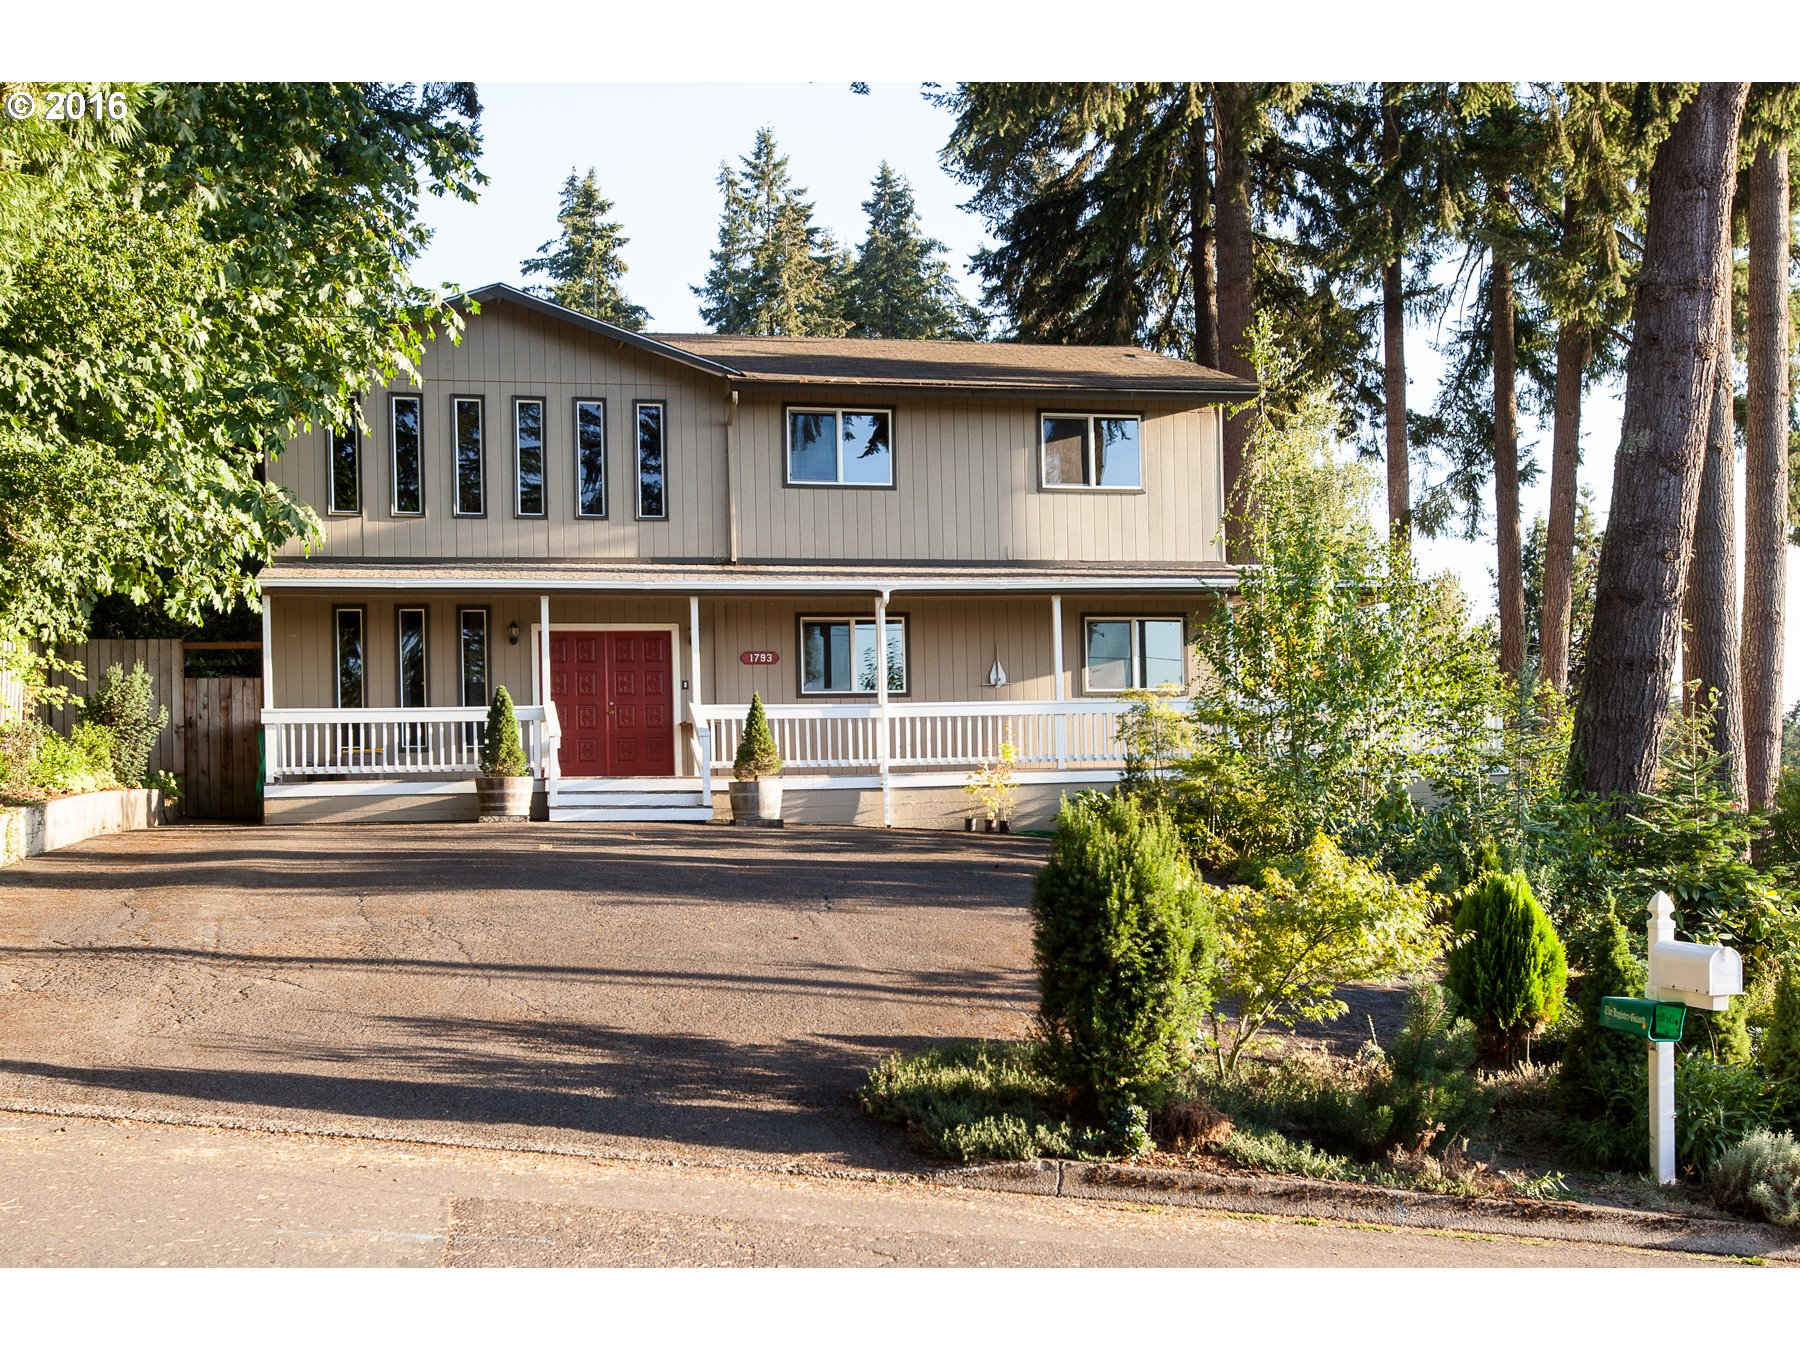 1793 E Taylor Ave, Cottage Grove, OR